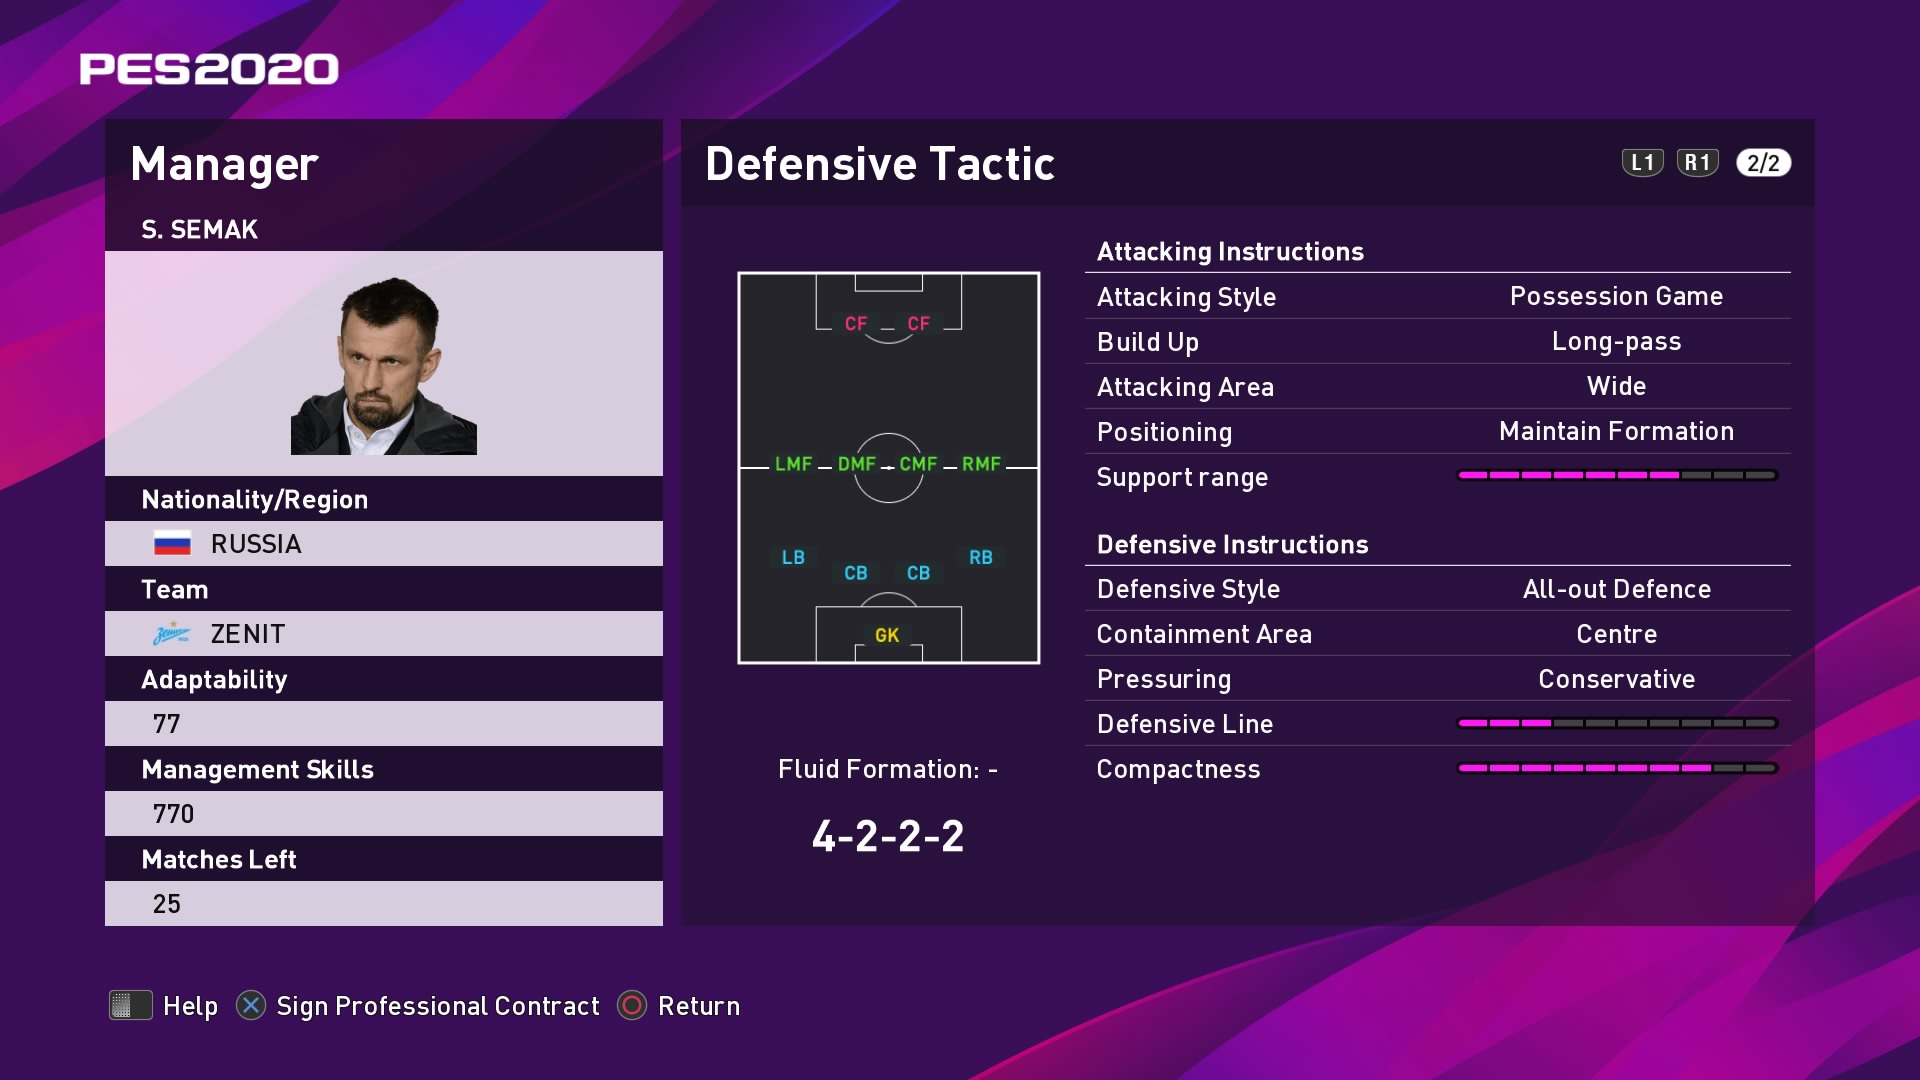 S. Semak (Sergei Semak) Defensive Tactic in PES 2020 myClub